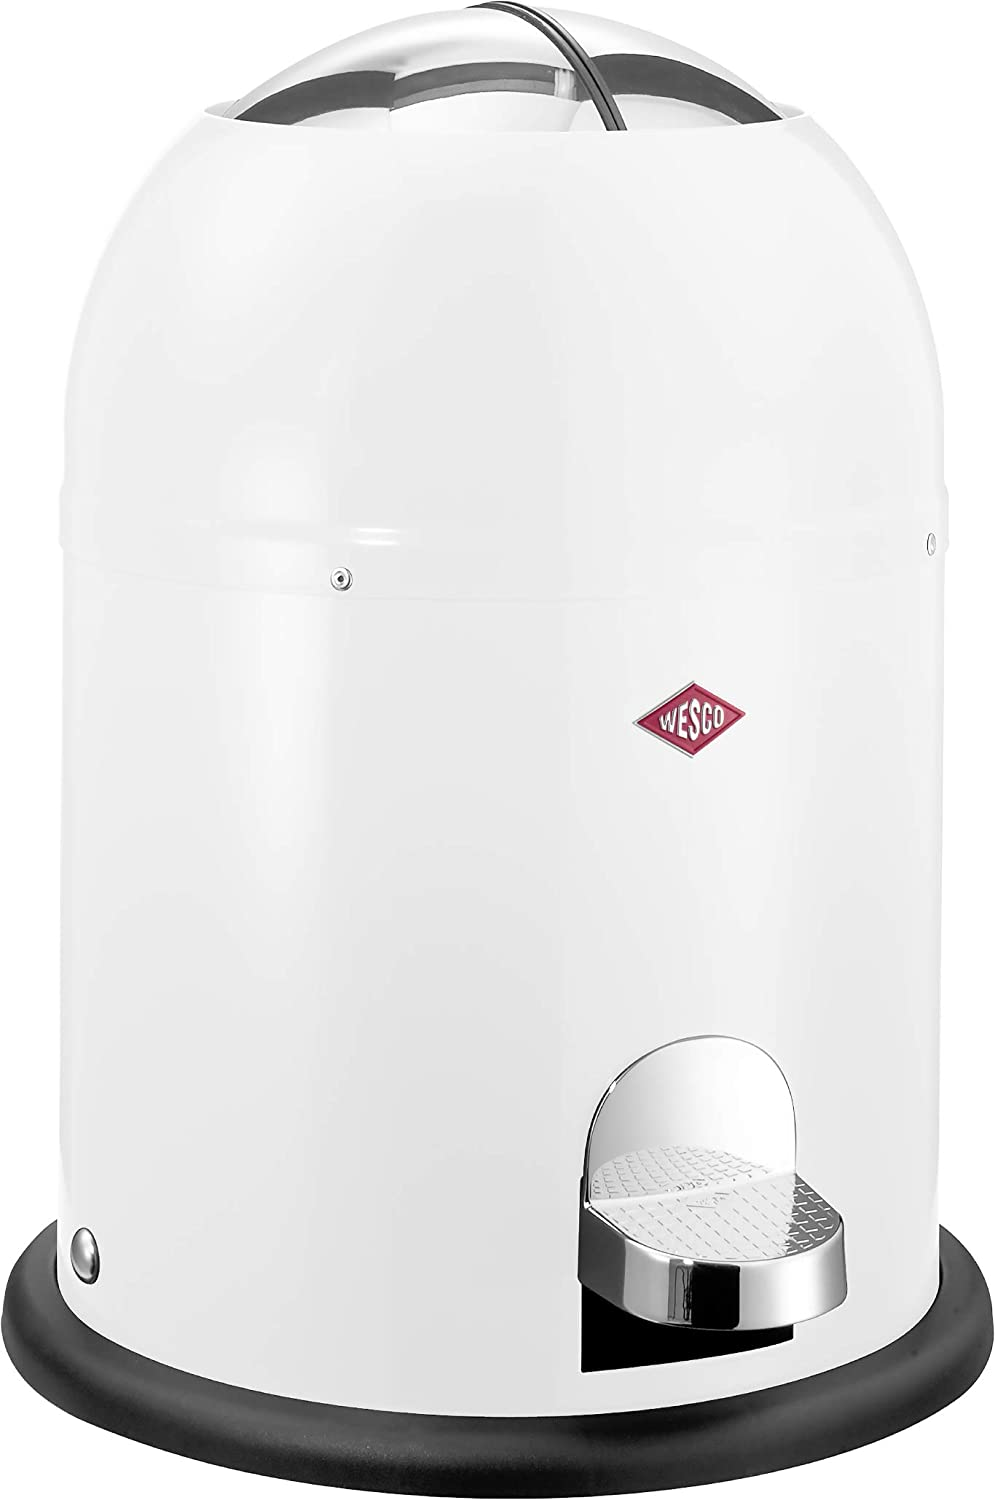 Wesco Single Master - German Designed - Small Step Trash Can, Powder Coated Ssteel, 2.4 Gallon / 9 L, White